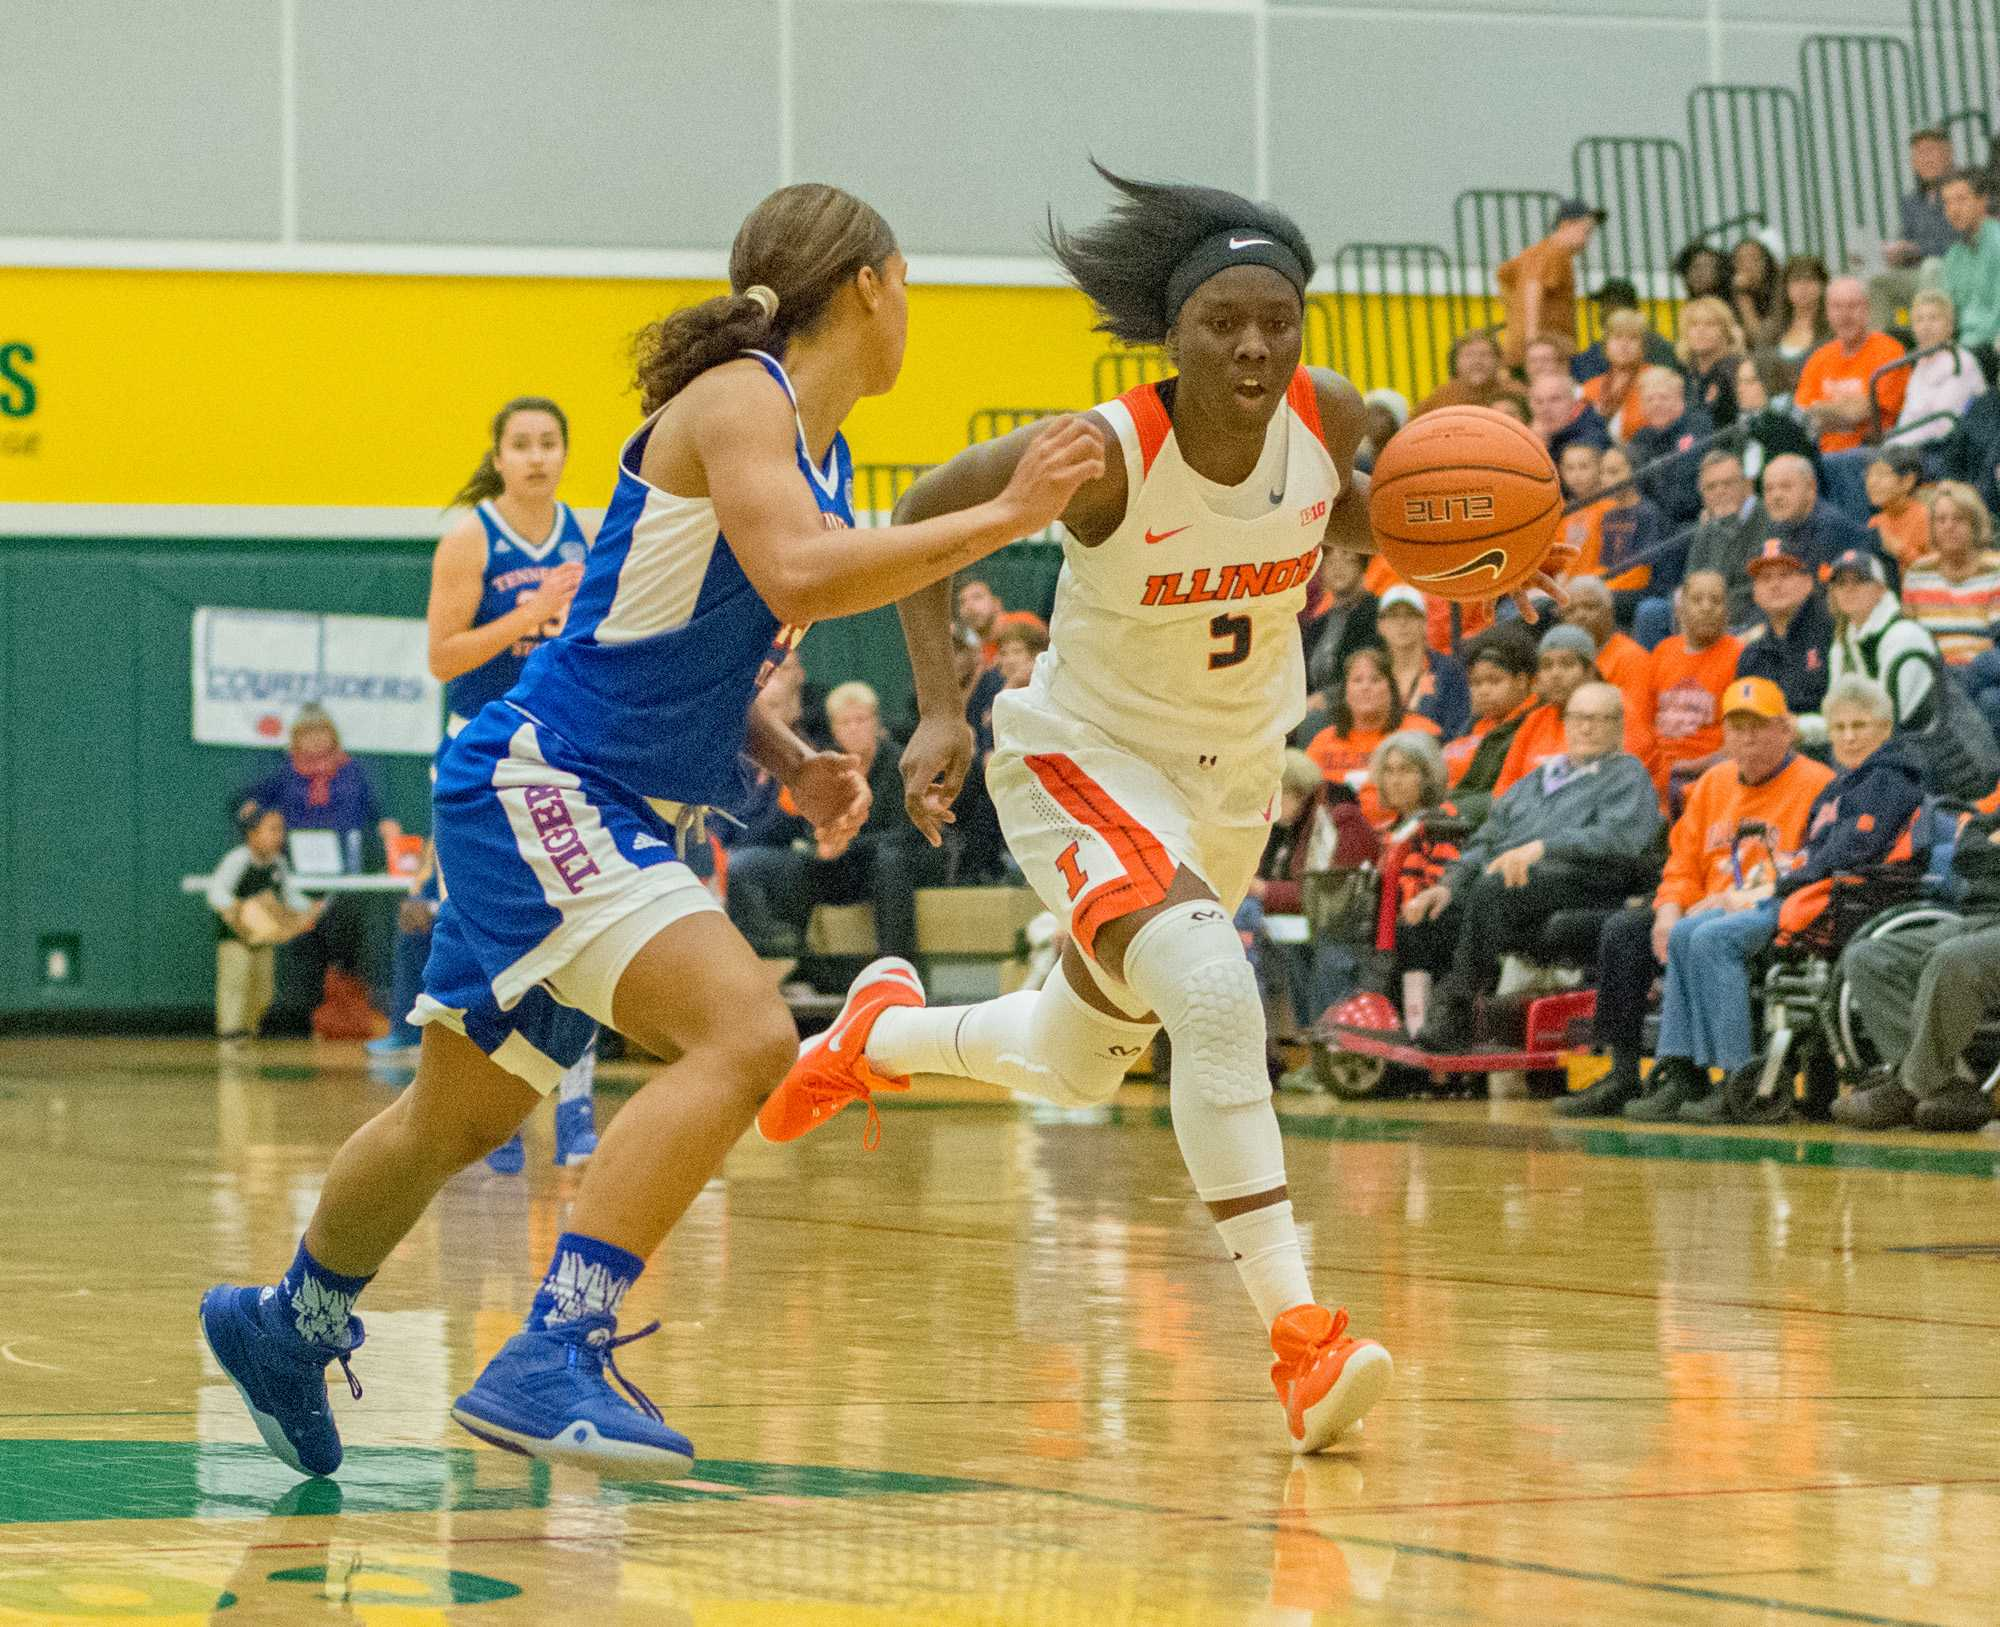 Guard Cierra Rice sprints up the court during the game against Tennessee State at Parkland College on Tuesday, Nov. 24. Illinois won 98-43.